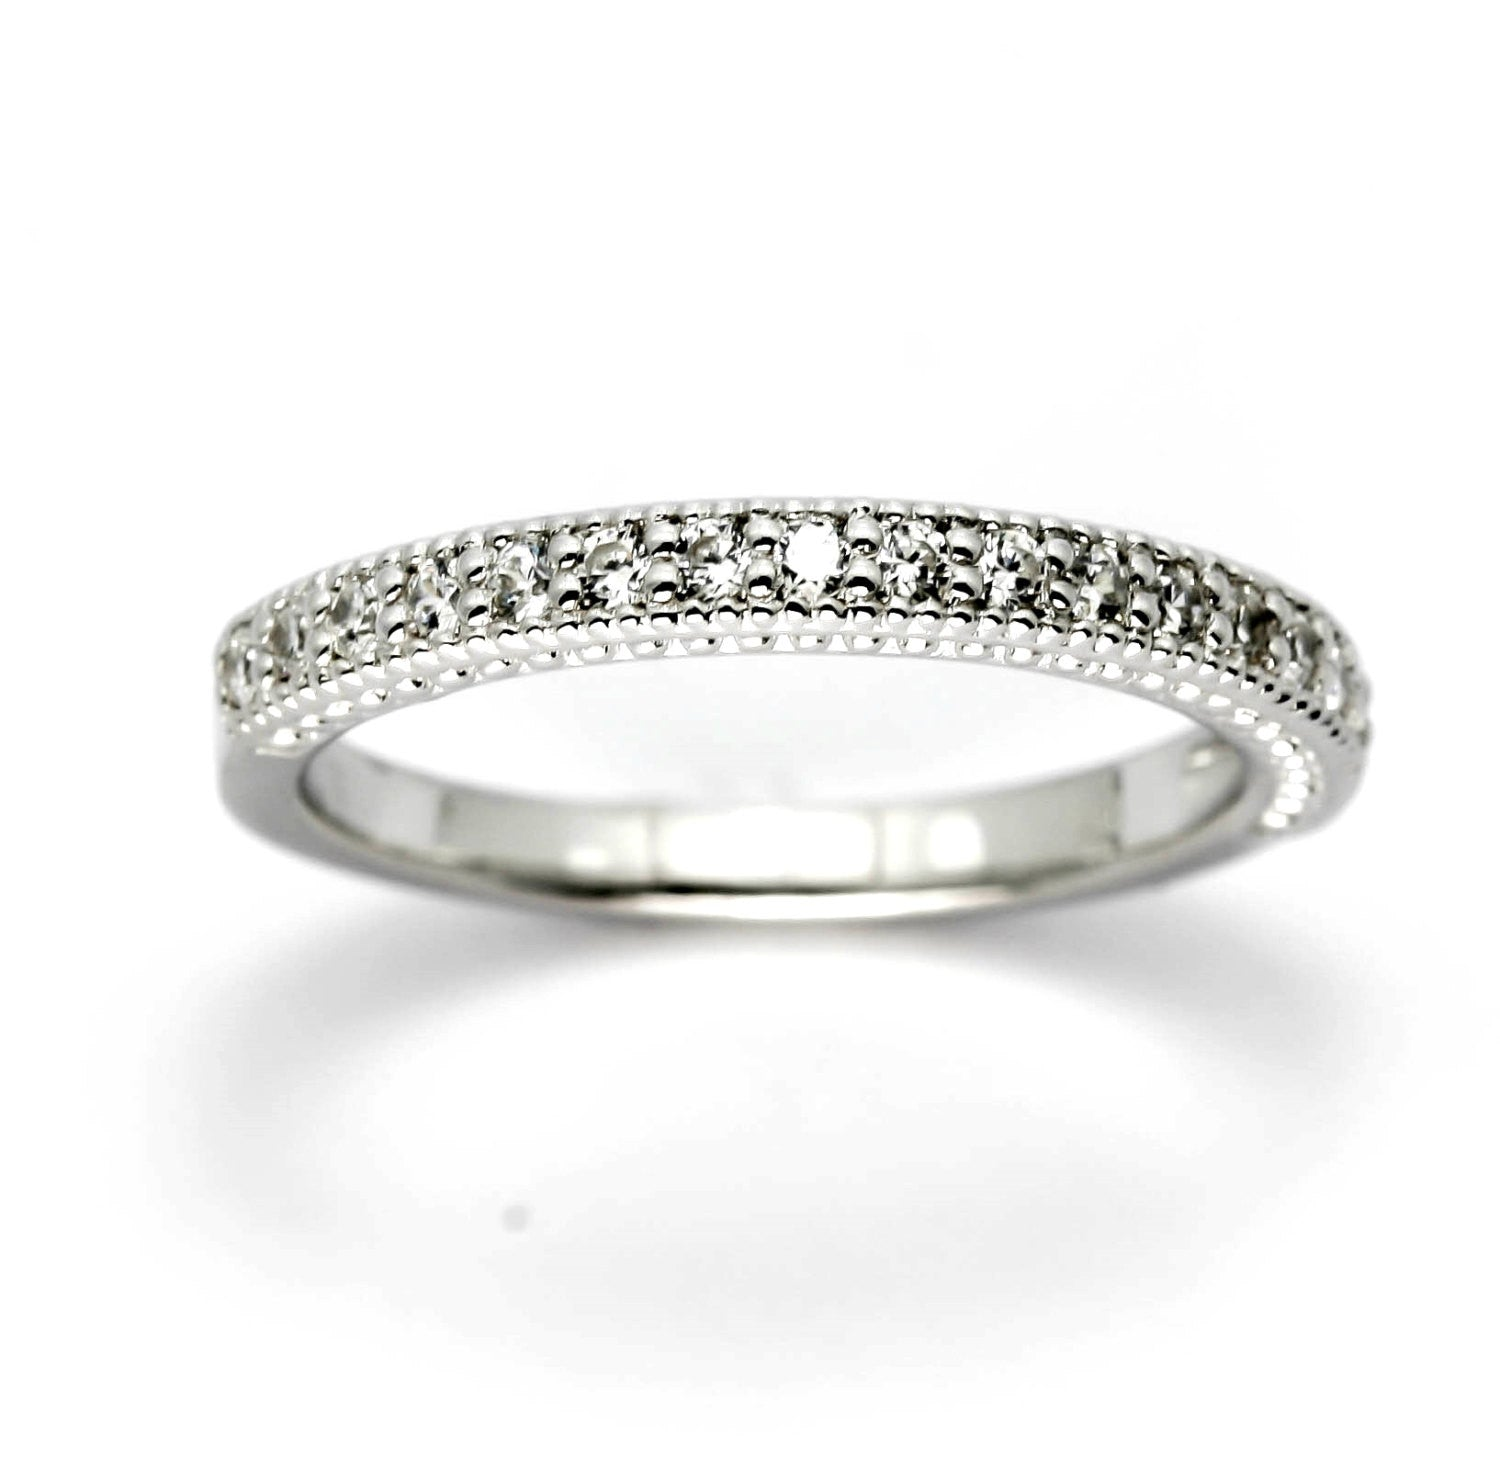 rings wedding band full number shaped l white h product webstore occasion gold bands diamond diamonds category samuel